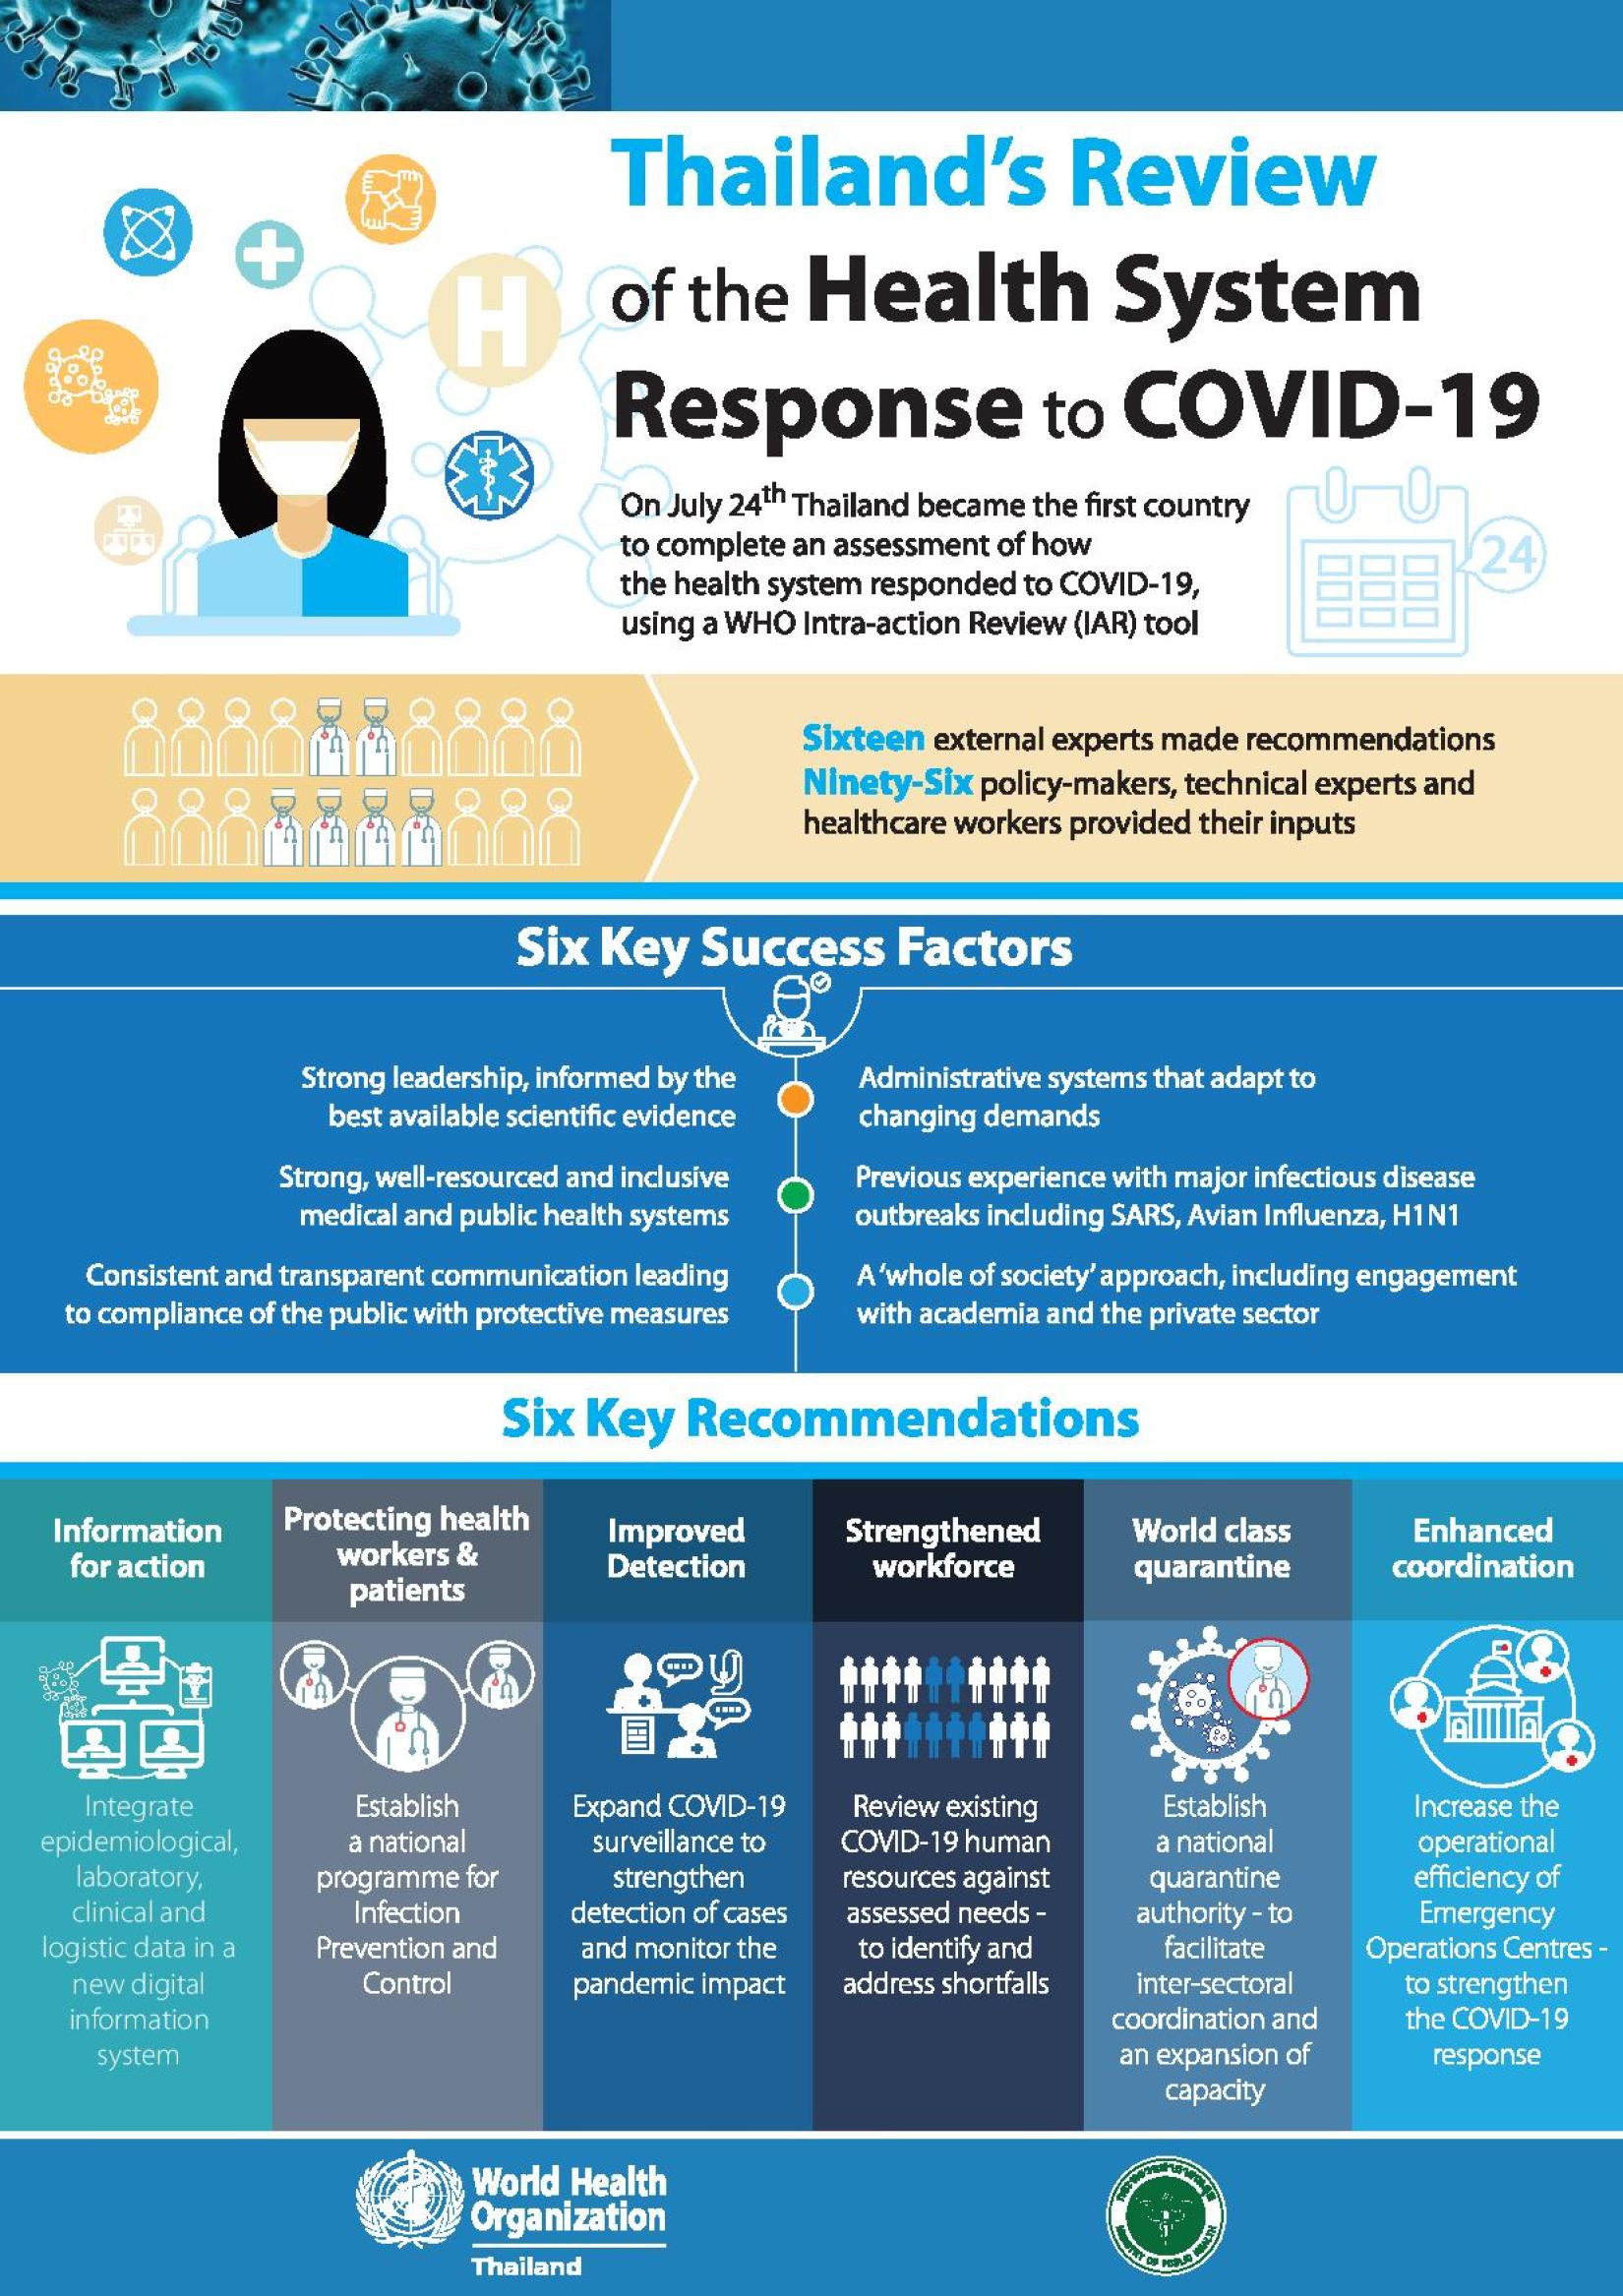 The Ministry of Public Health and the World Health Organization Review Thailand's COVID-19 Response